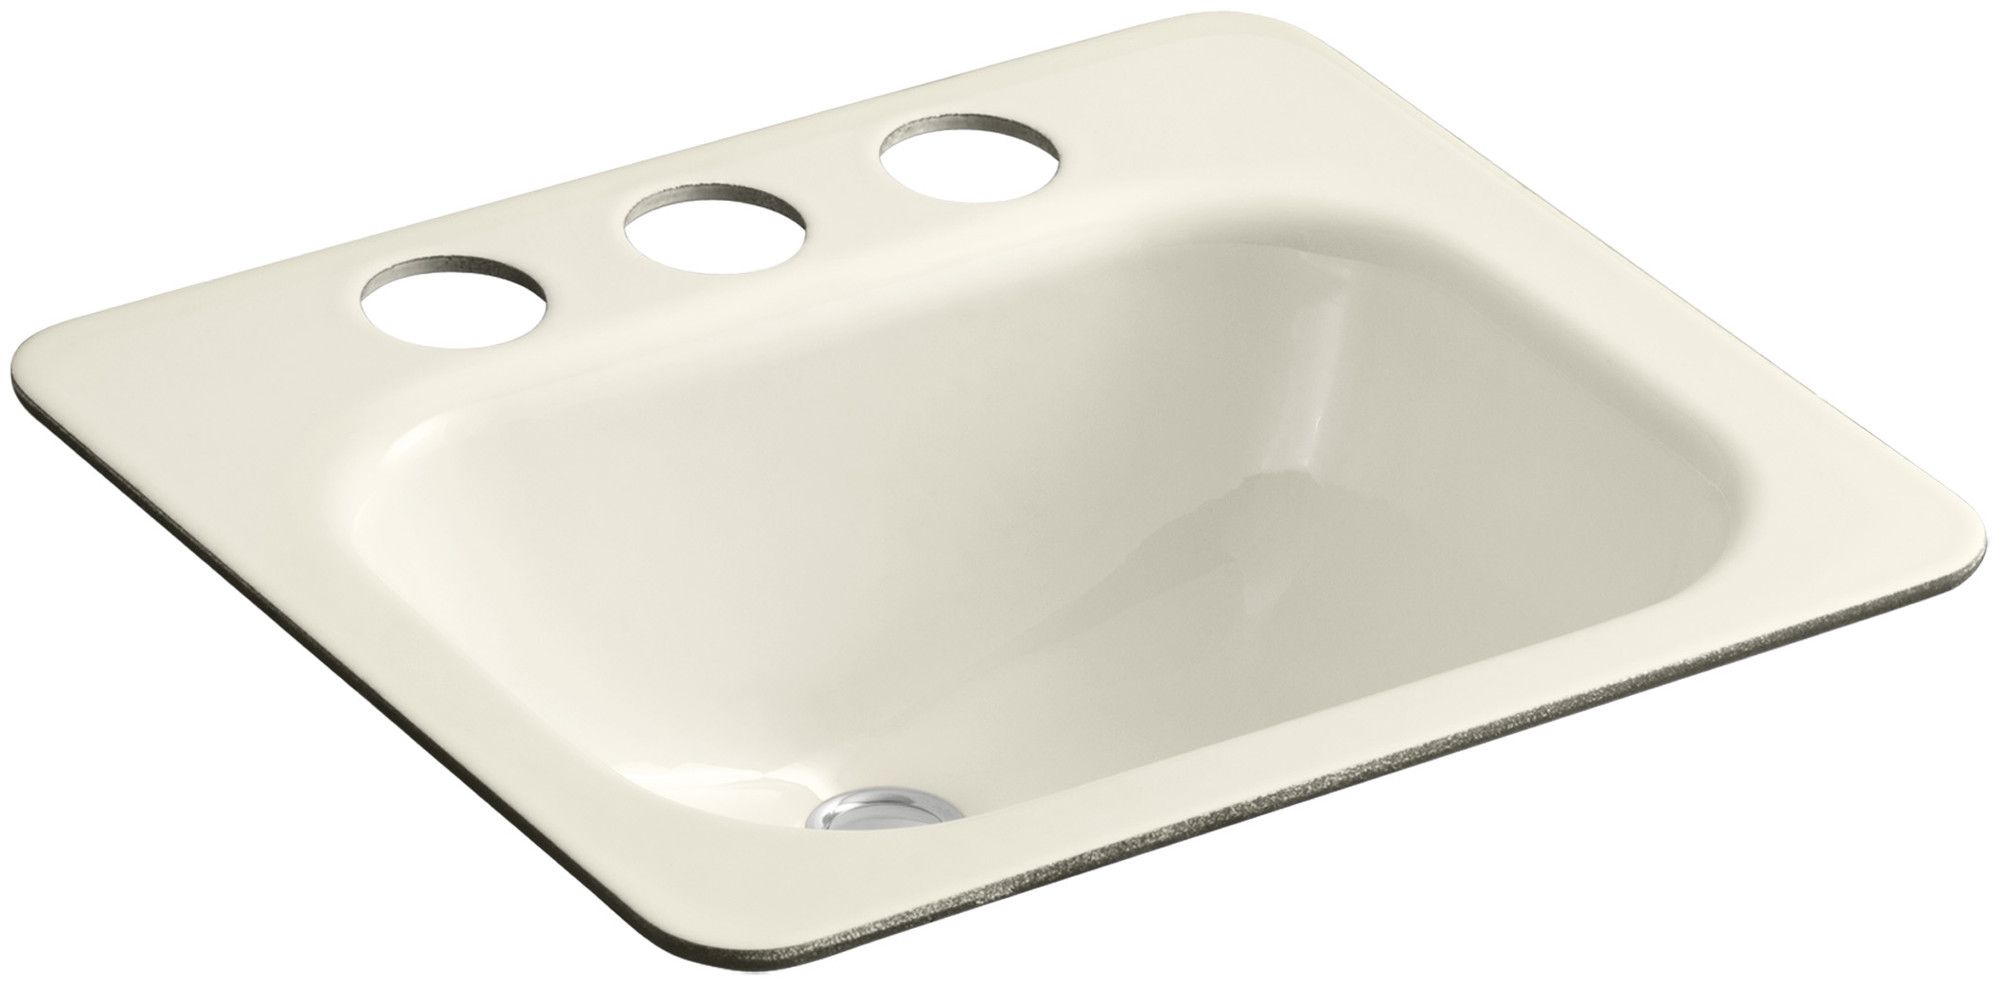 "Tahoe Undermount Bathroom Sink with Oversize 8"" Widespread Faucet Holes"